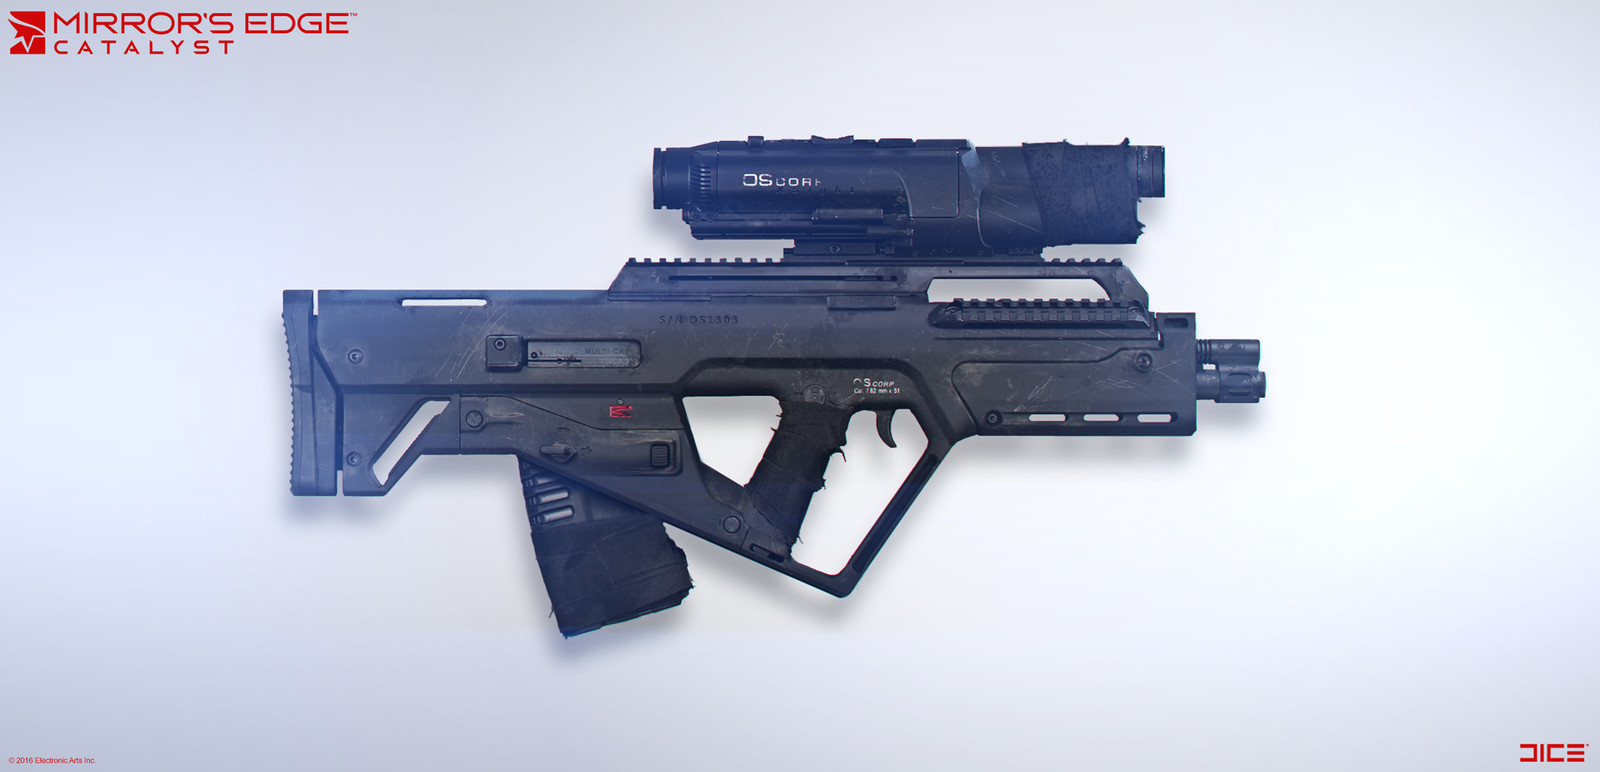 Black November Rifle - Concept Art